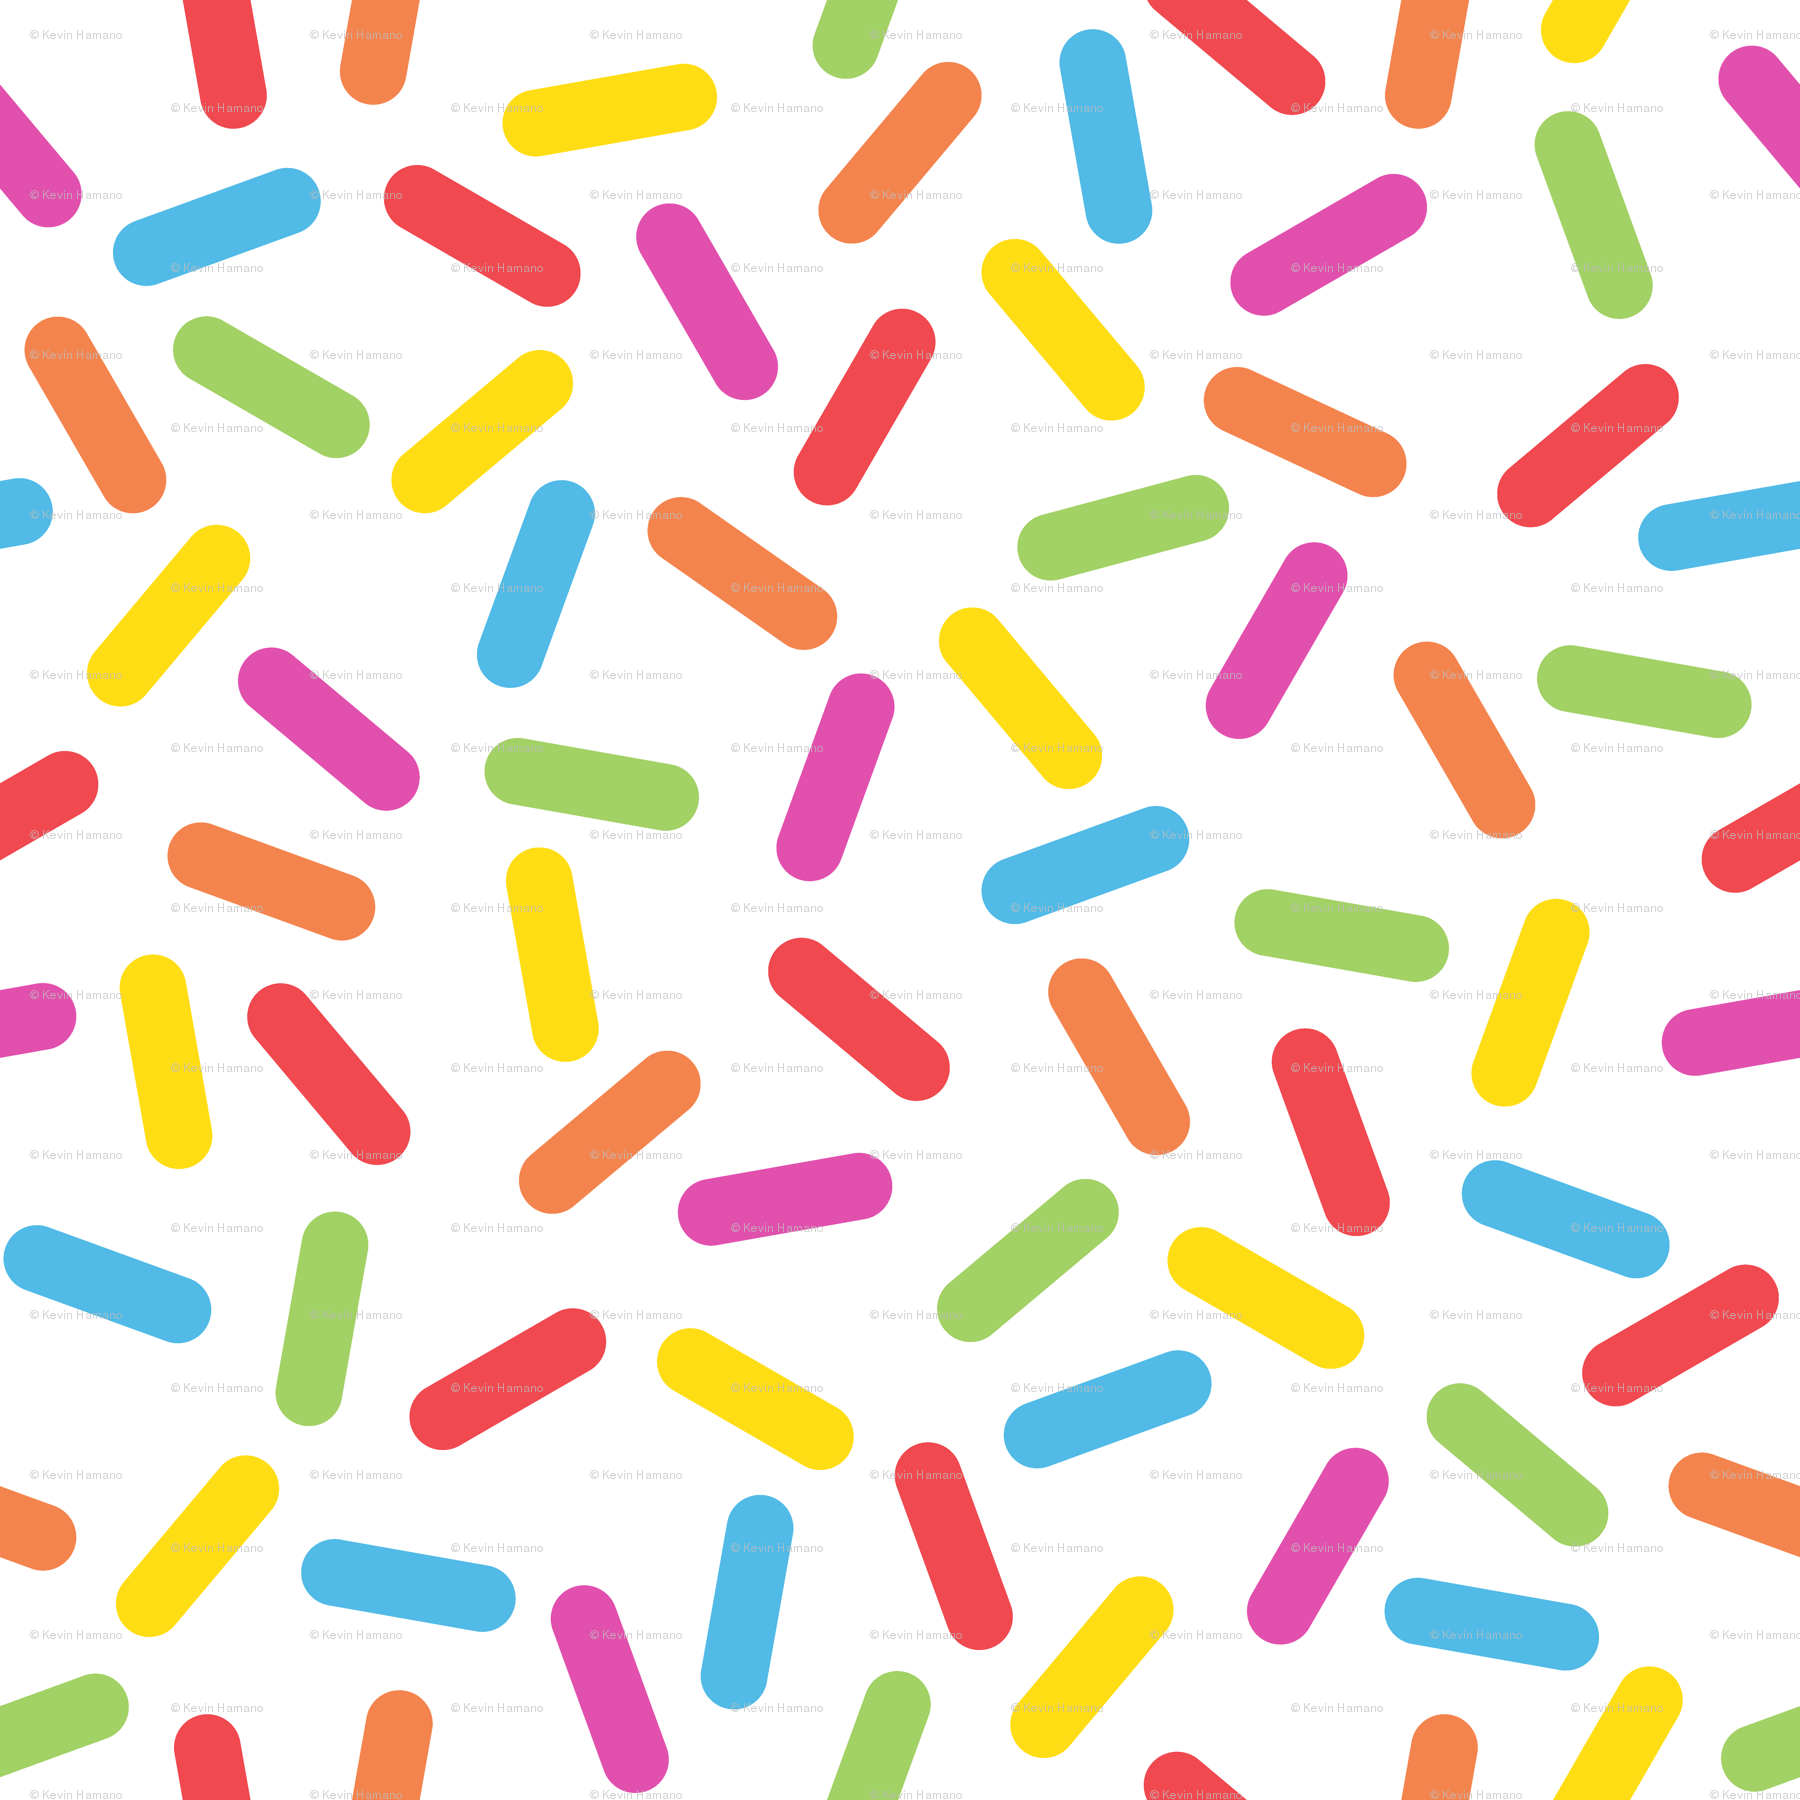 Rainbow Sprinkles wallpaper.